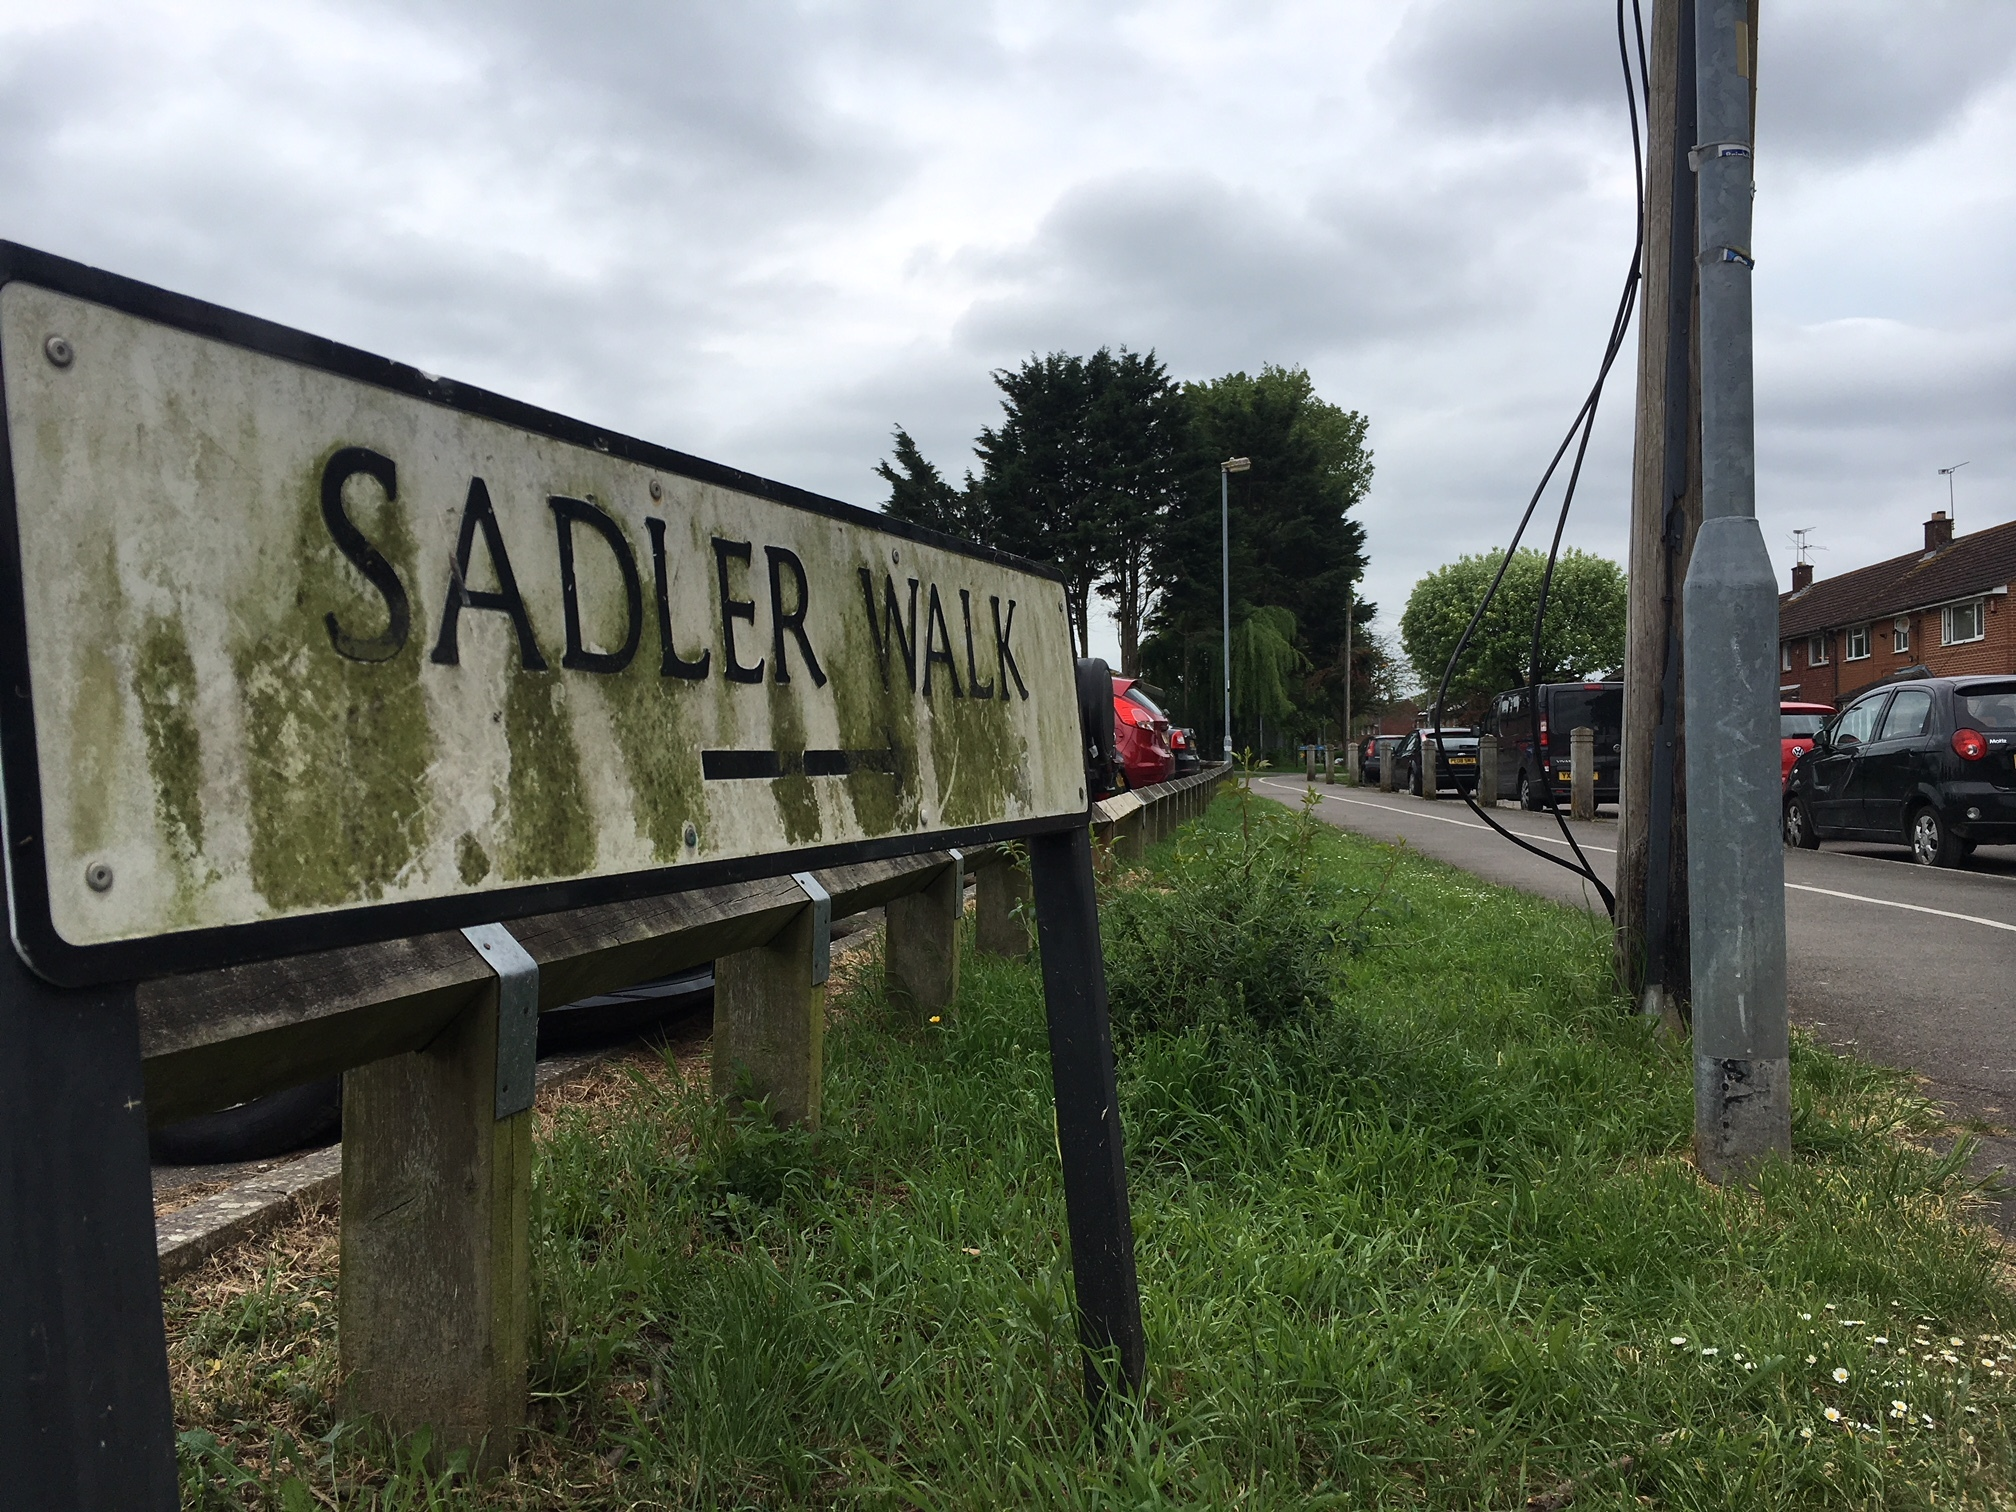 Sadler Walk, Walcot.